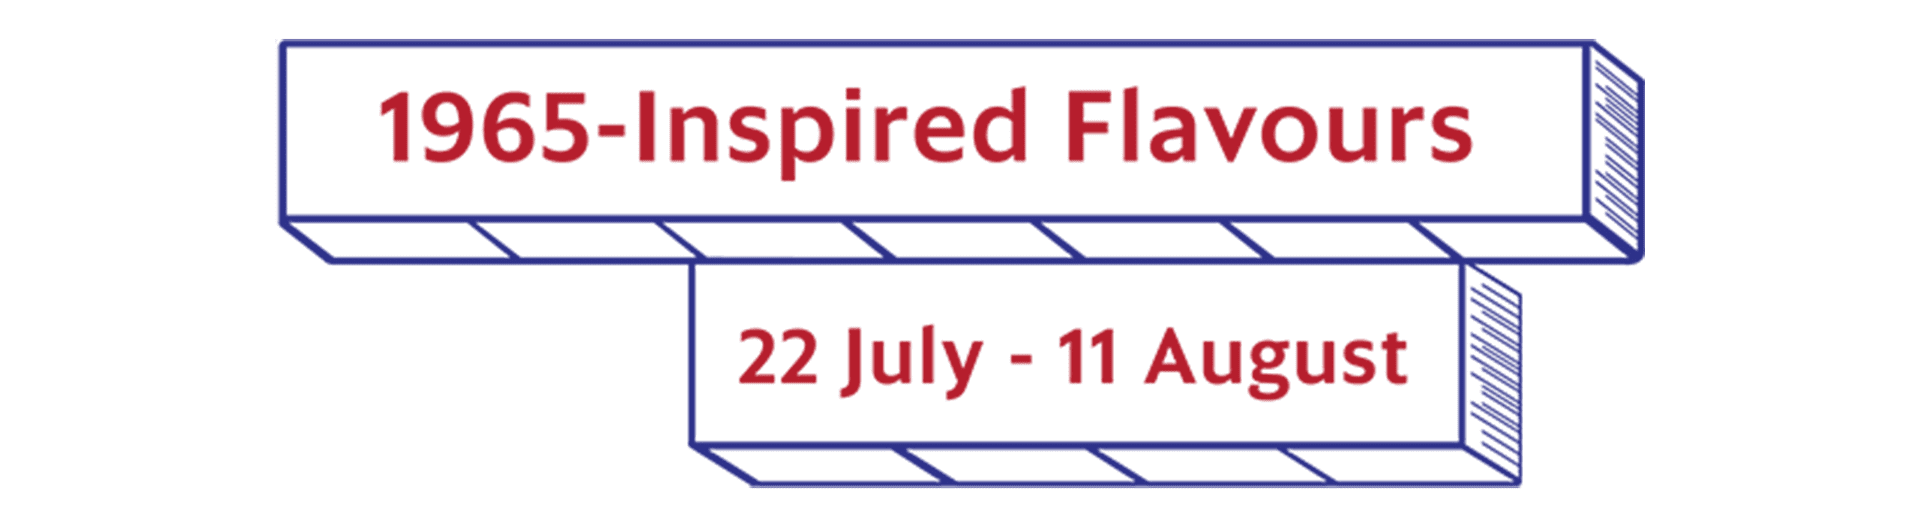 1965 -Inspired Falvours 22 July - 11 August